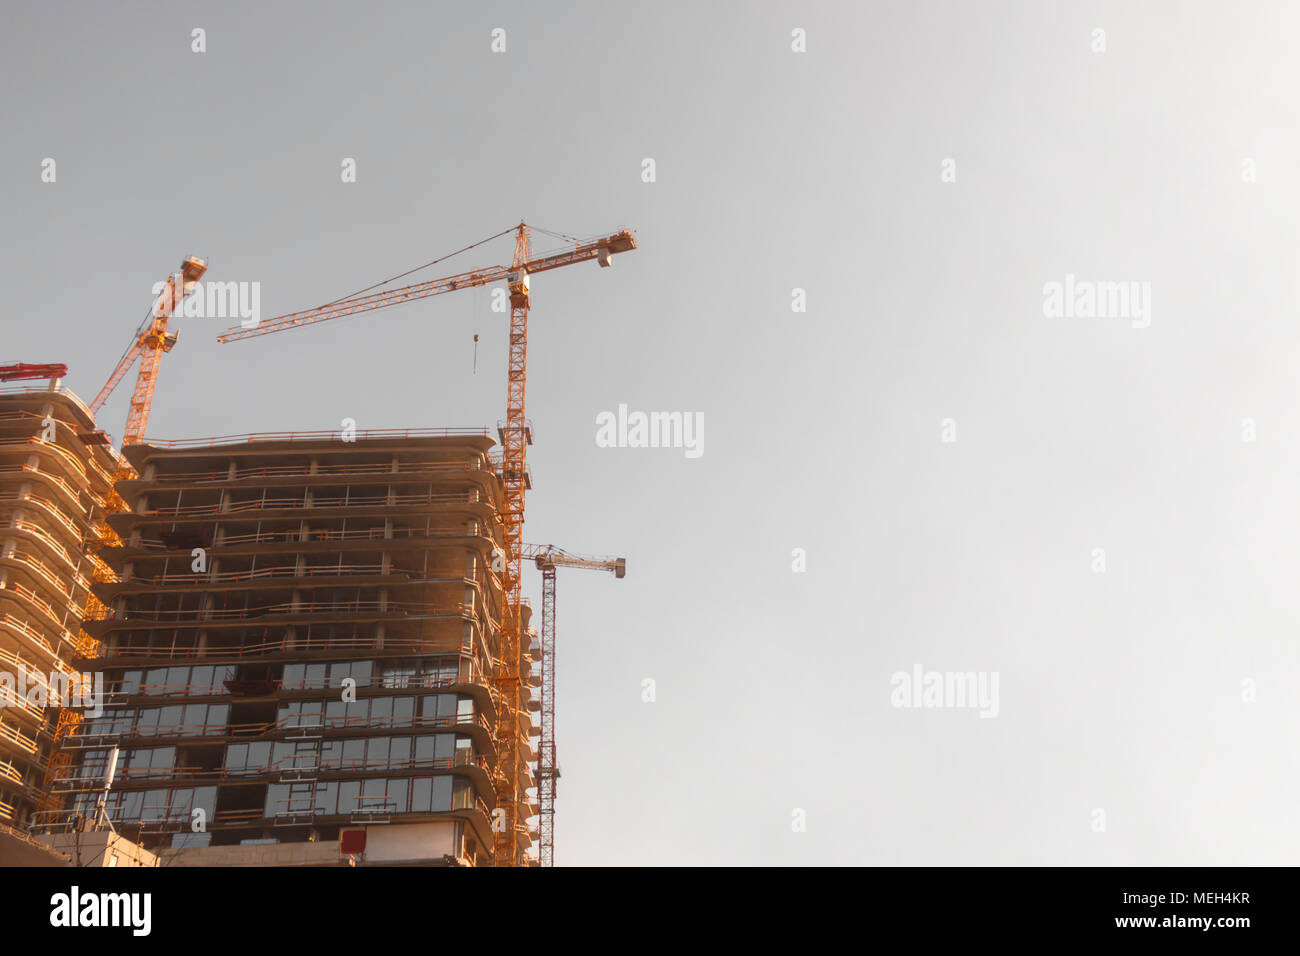 Industrial High Rise Stock Photos Amp Industrial High Rise